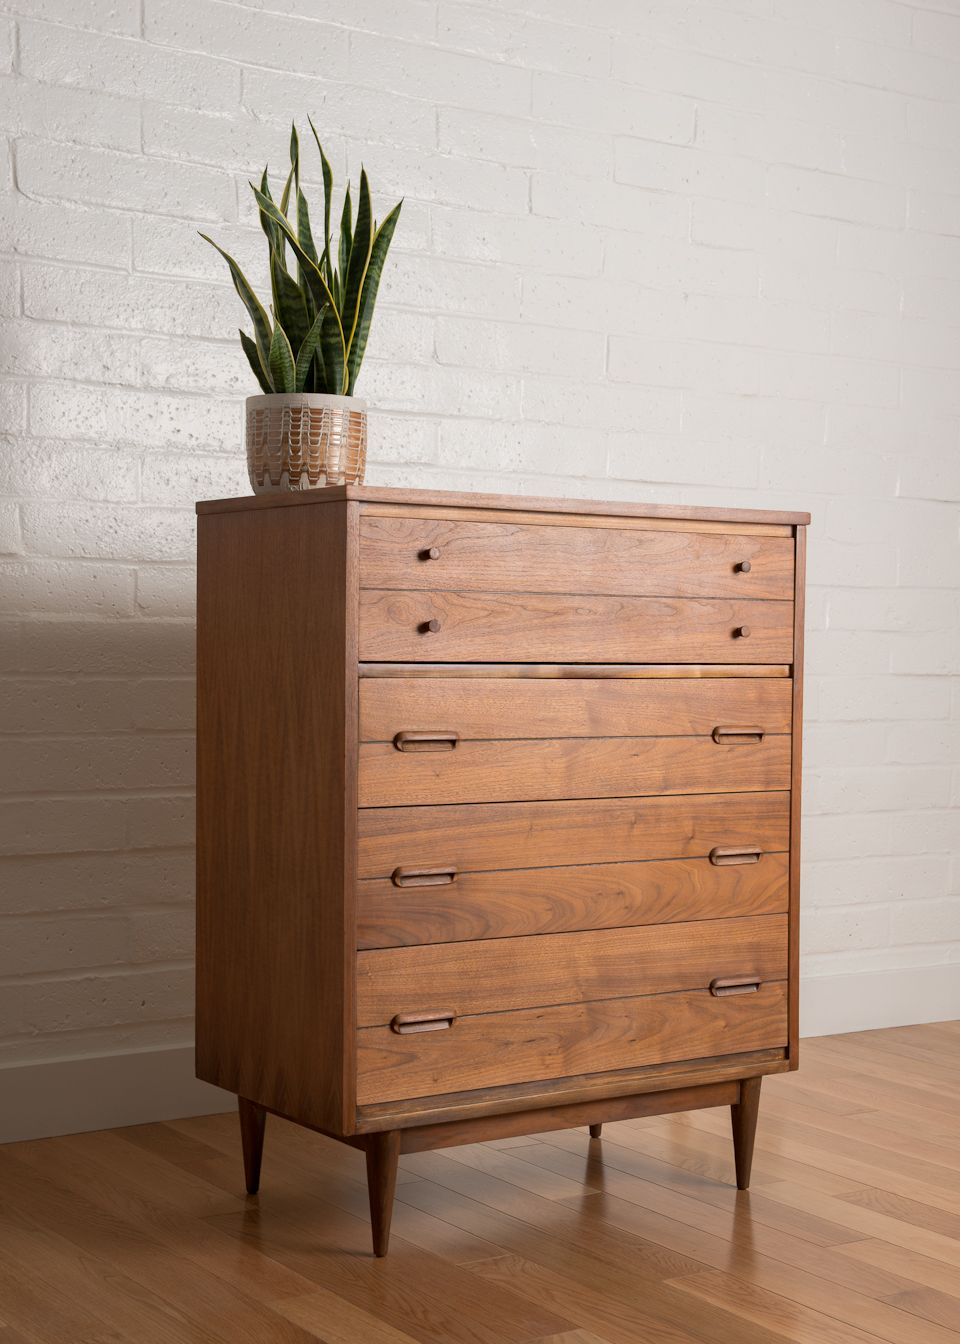 mid century dresser with white wall and wooden floor plus flower vase furniture makeover. Black Bedroom Furniture Sets. Home Design Ideas